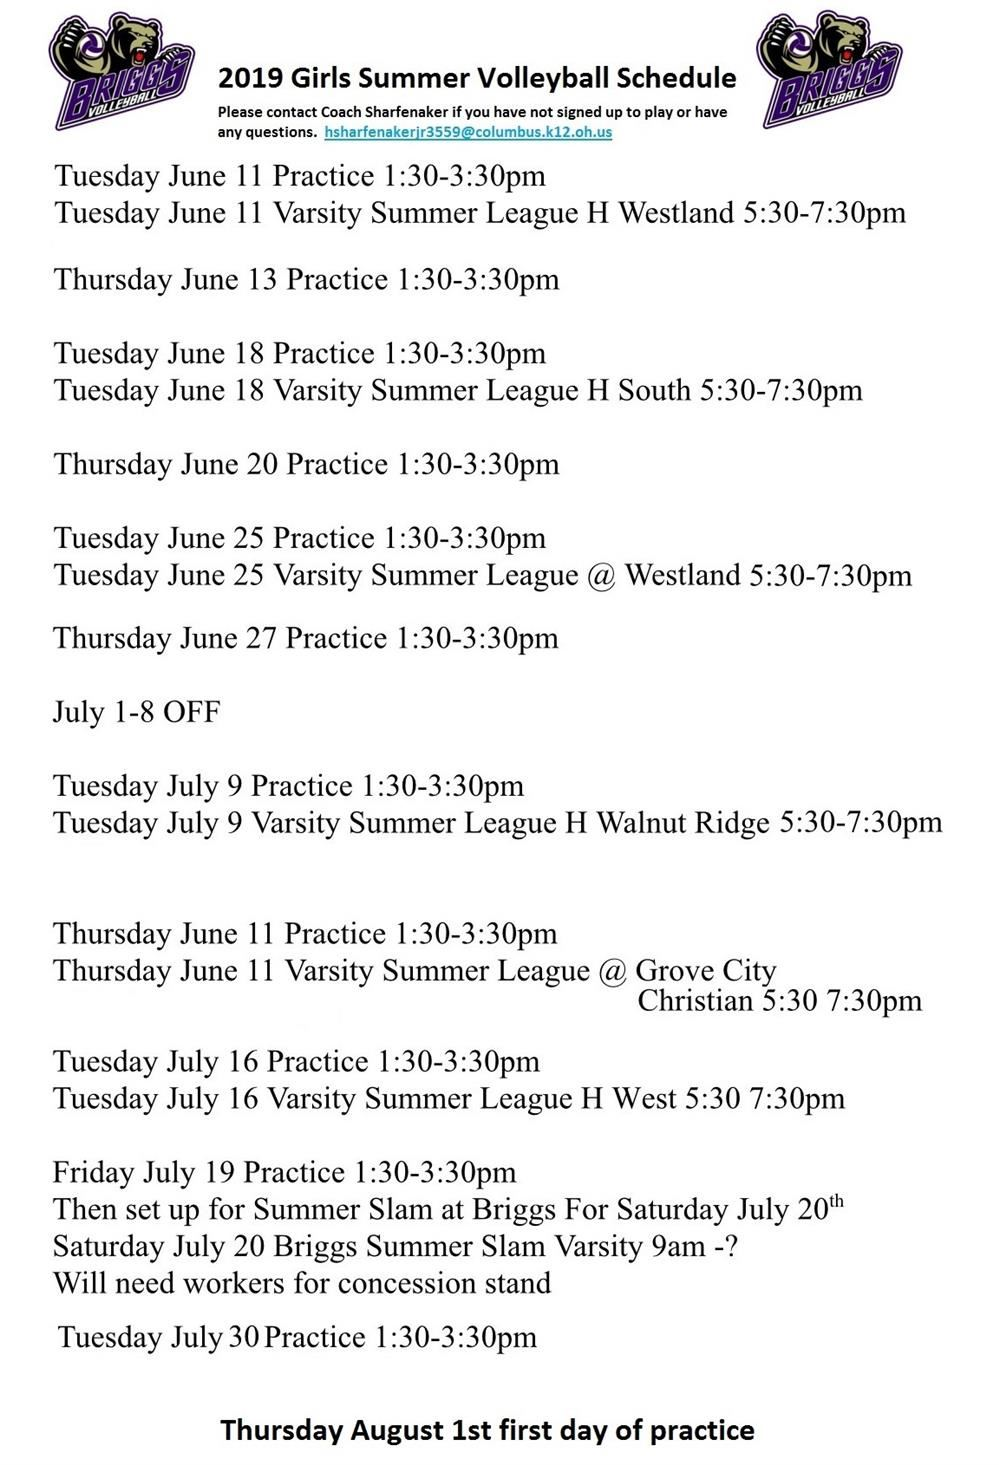 2019 Girls Summer Schedule